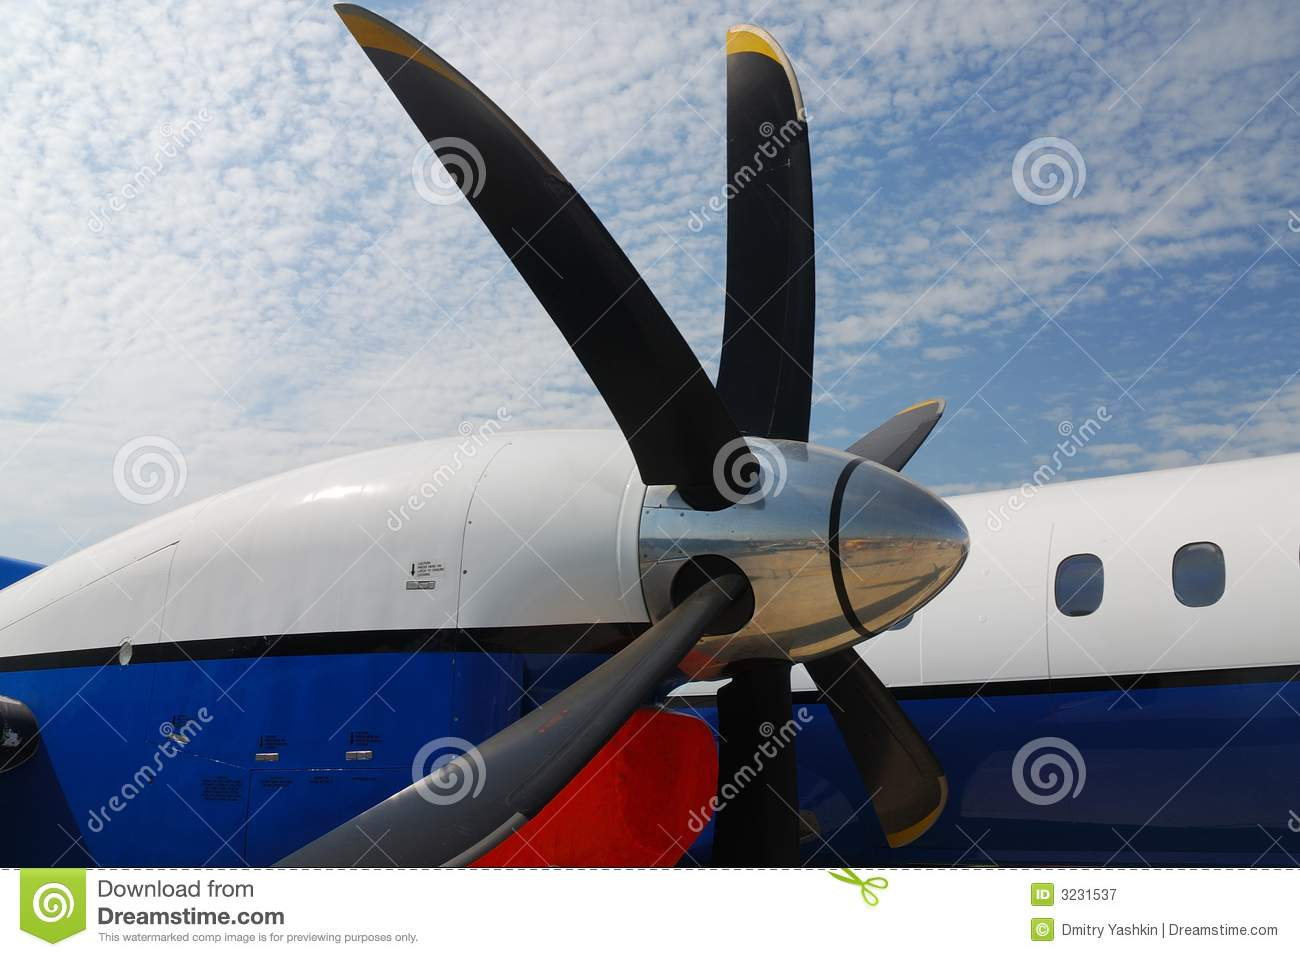 Wings and engines of aircraft